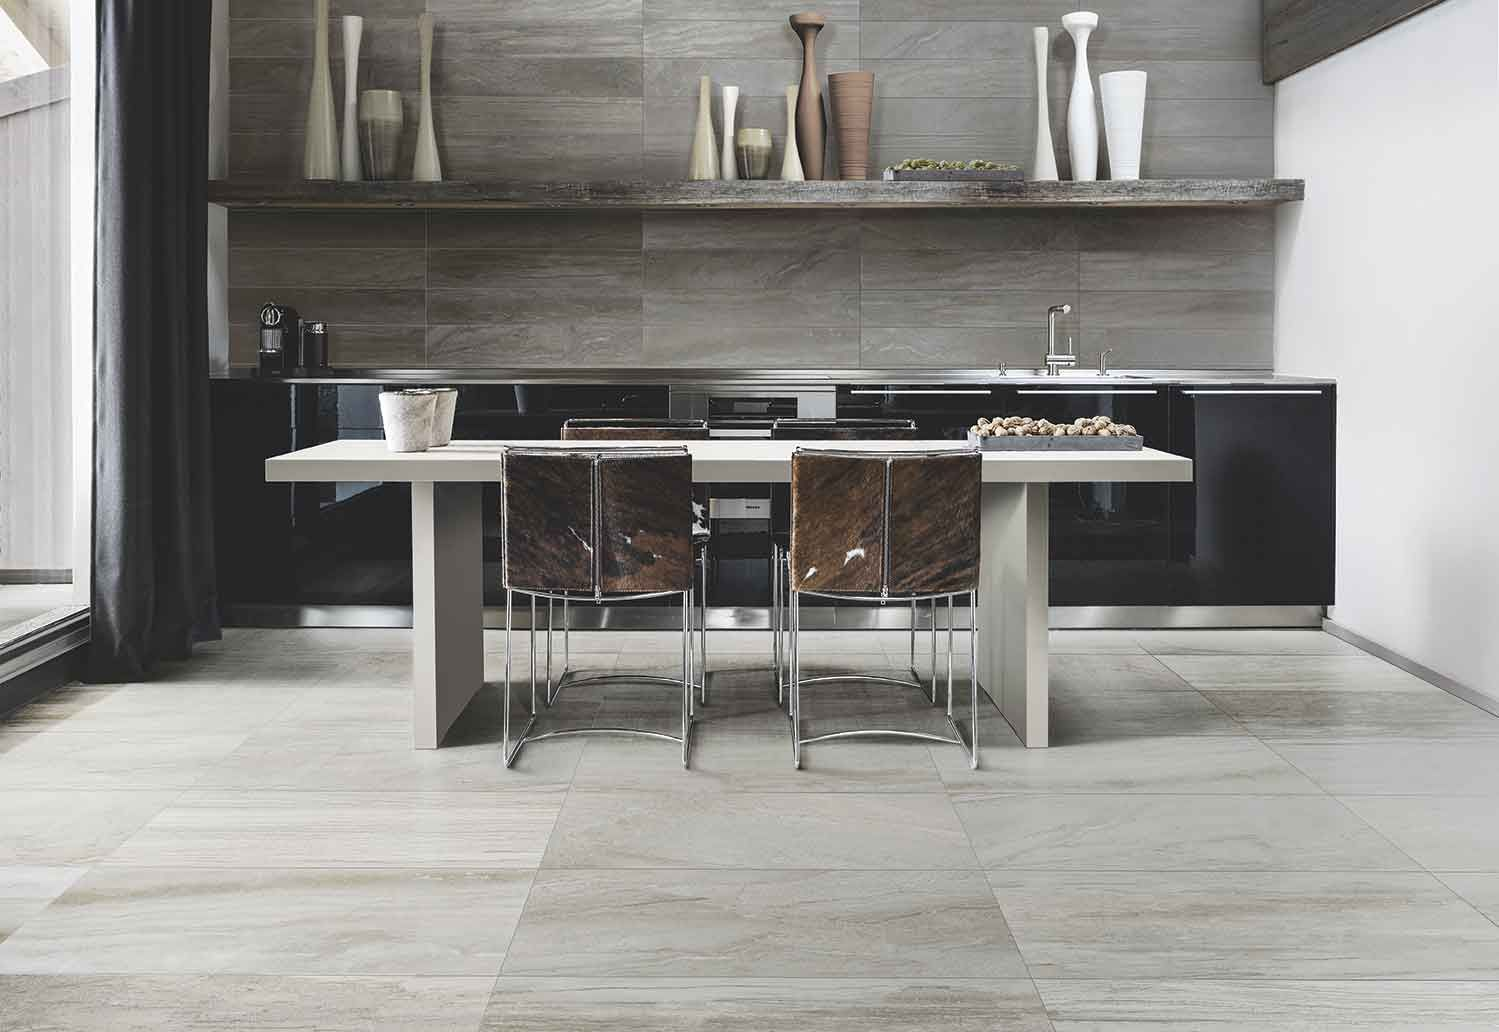 stone_fusion_cover_pic.jpg Kitchen floor tile